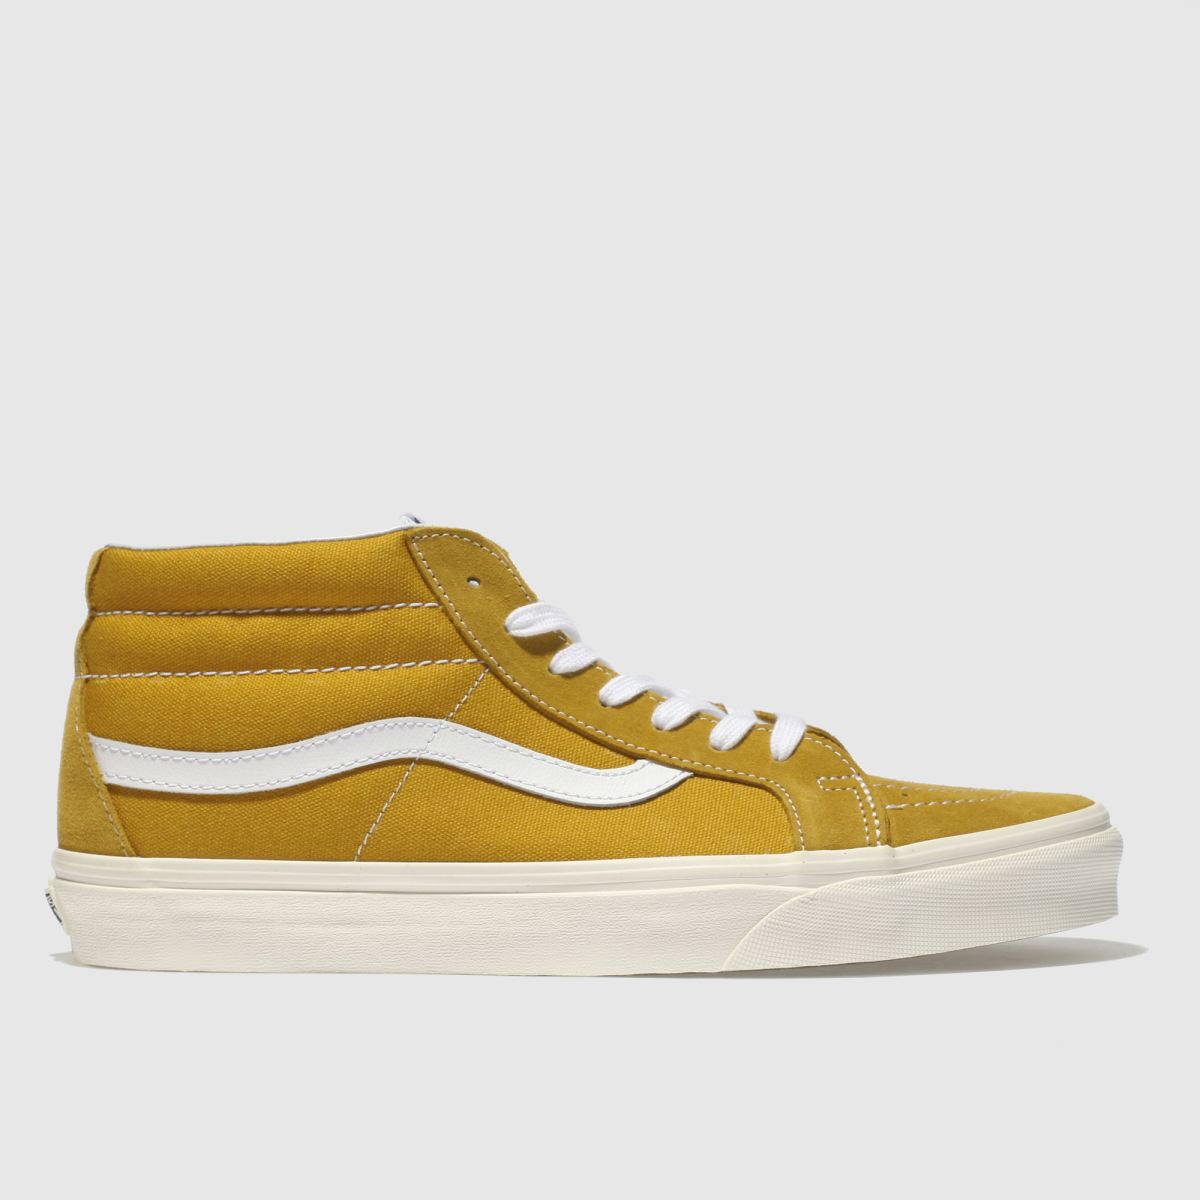 Vans Yellow Sk8-mid Reissue Trainers